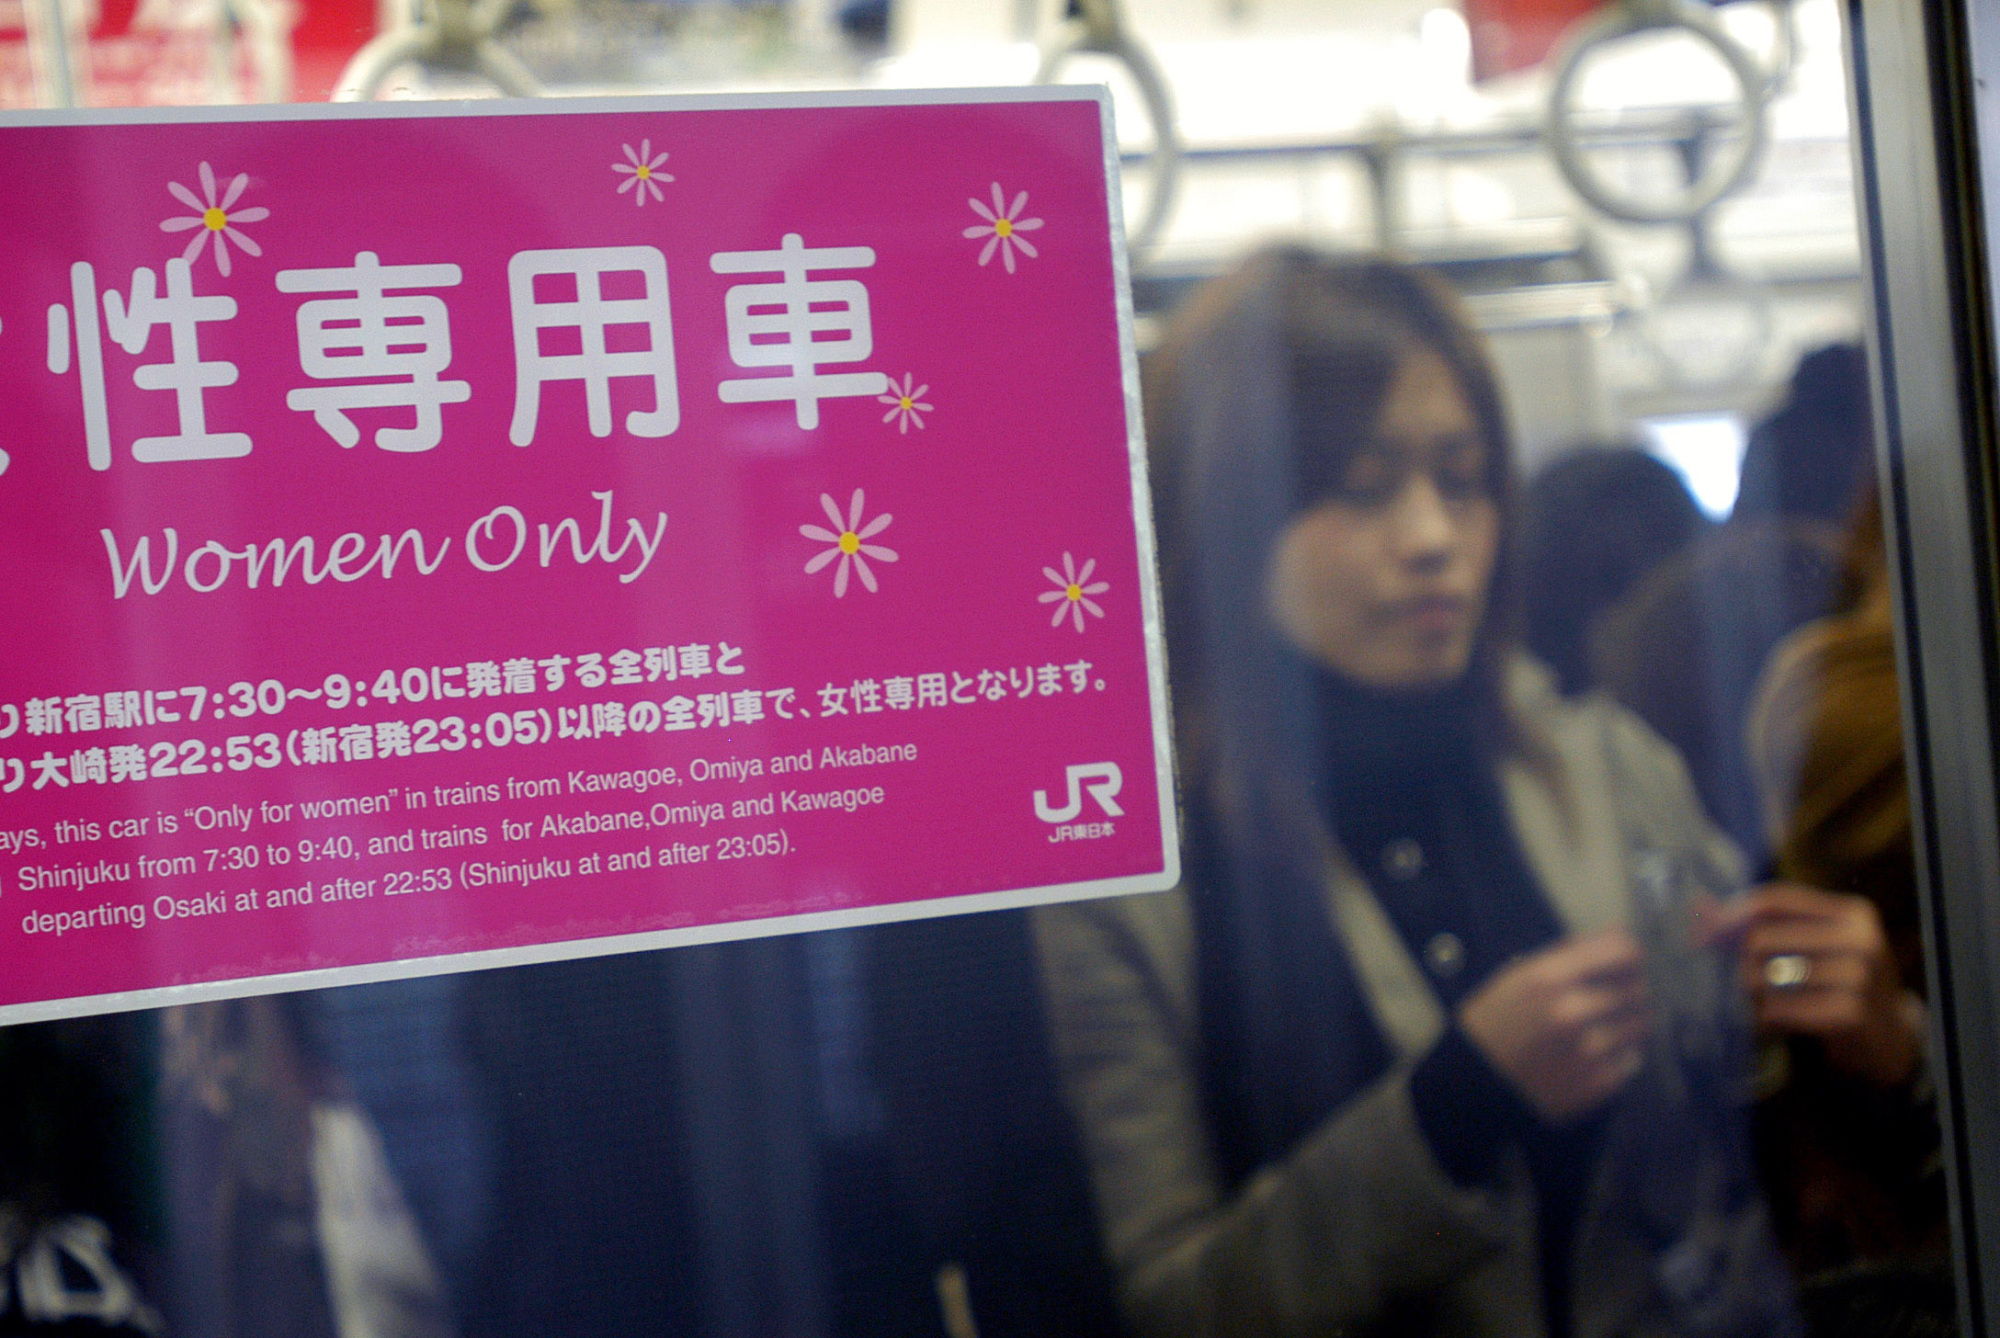 A majority of women in Tokyo approve of the single-sex carriages introduced in the city in 2000 to combat groping on trains, according to a survey. | BBG